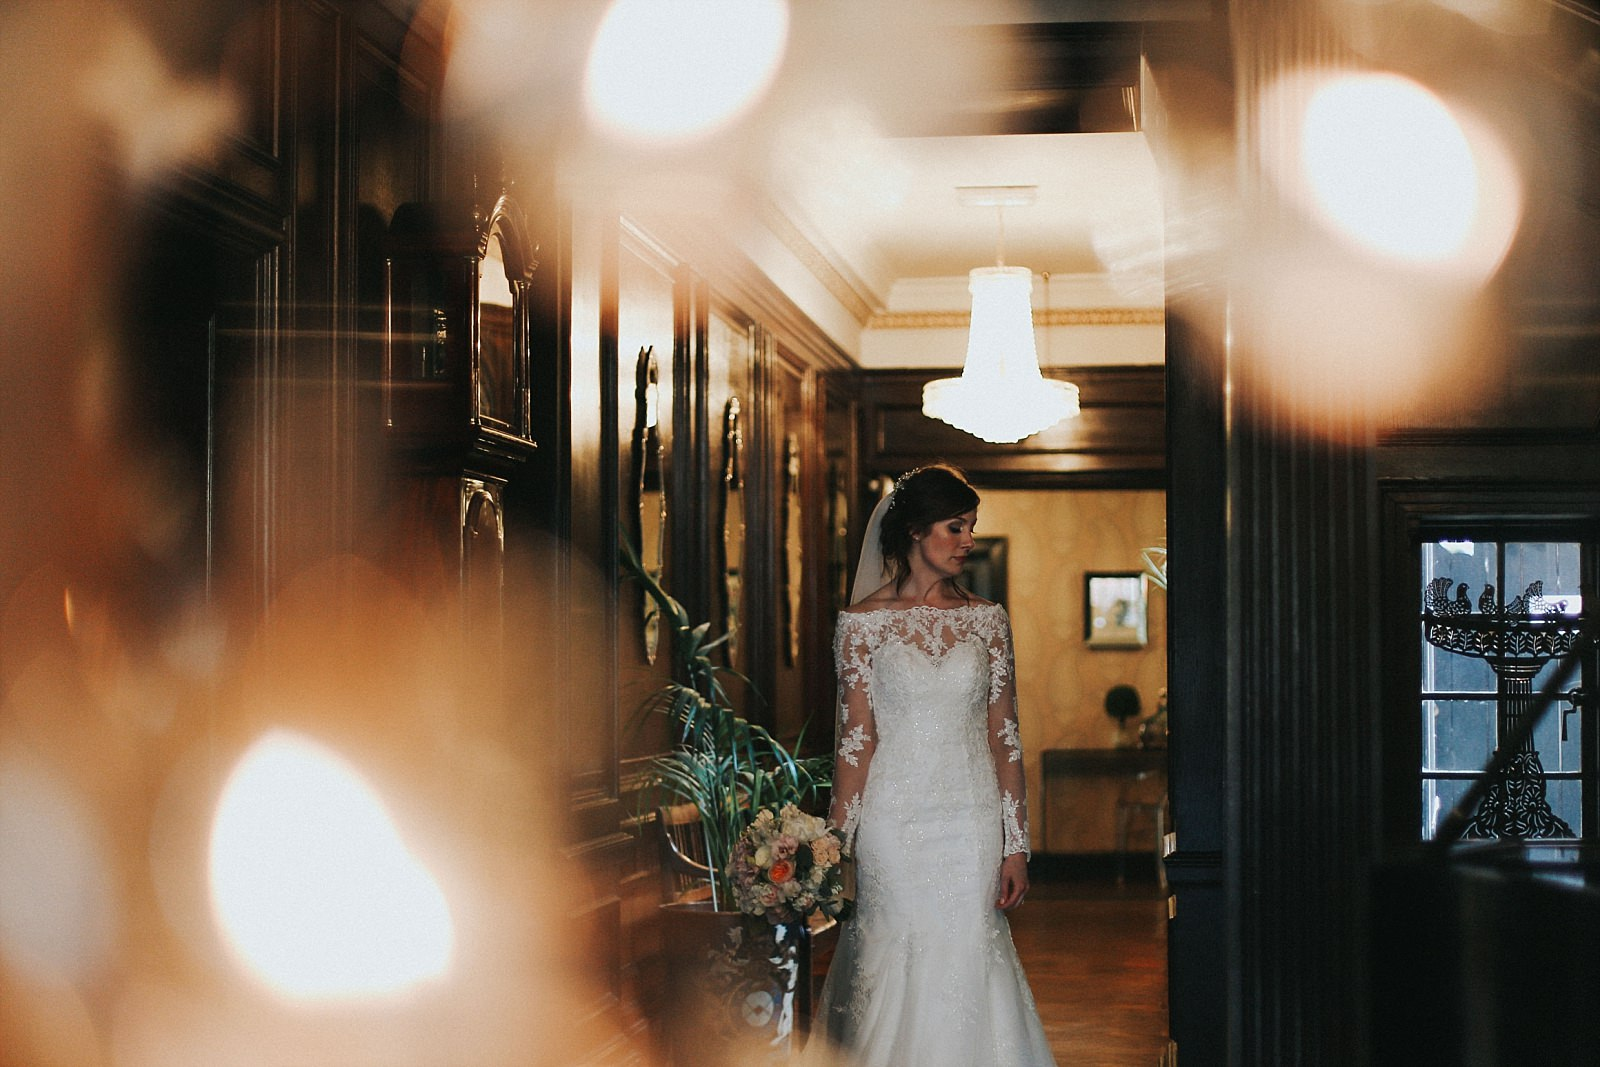 eaves hall wedding photographer captures the bride walking down the corridor